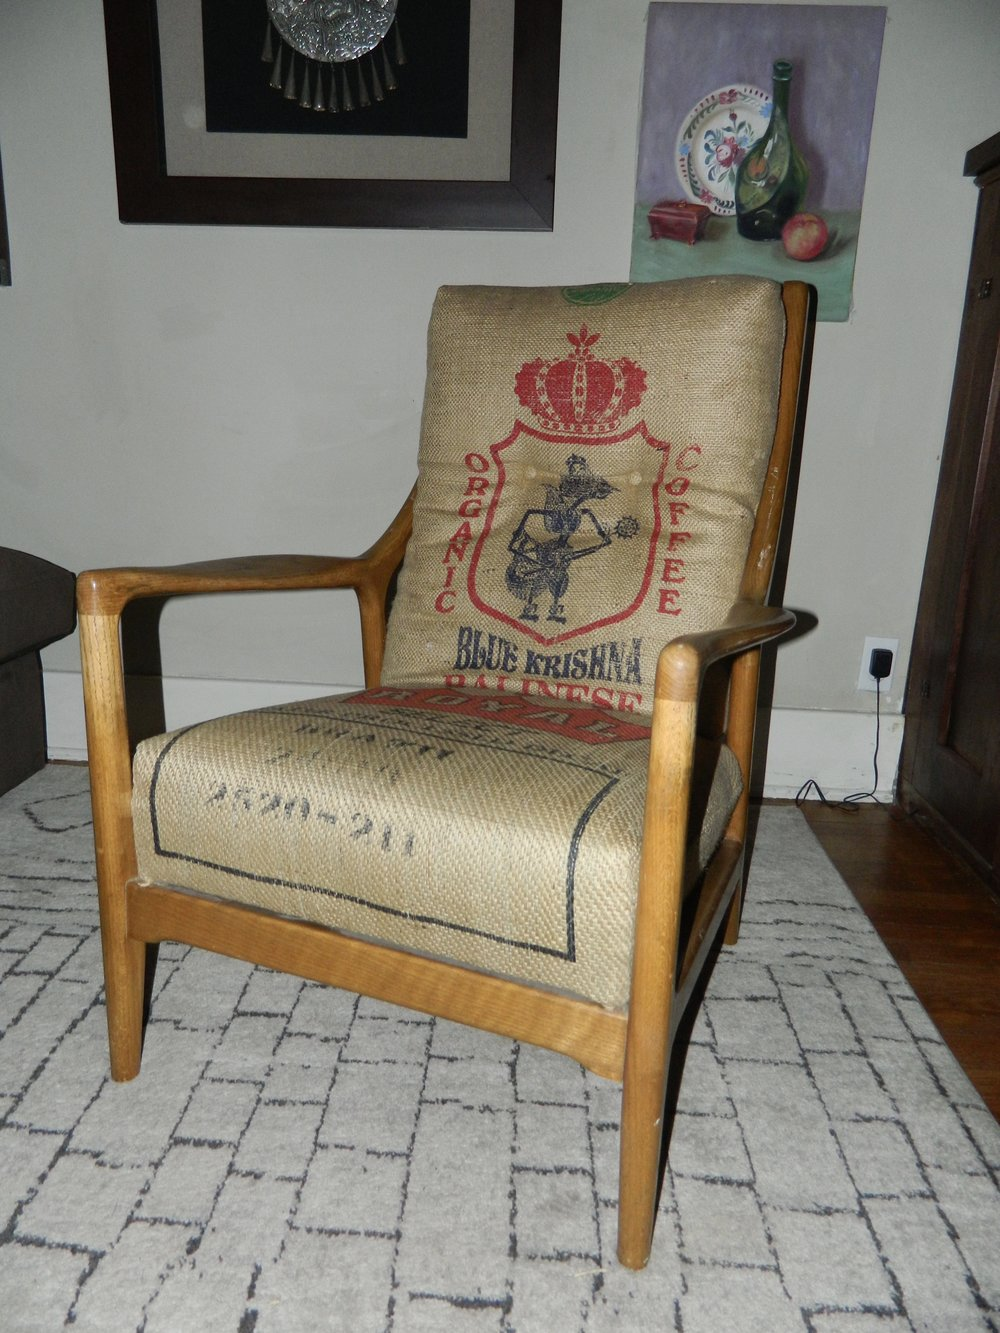 Coffee sacks are another favorite go-to material. This mid century chair gets a fun makeover with the use of different burlap coffee sacks.